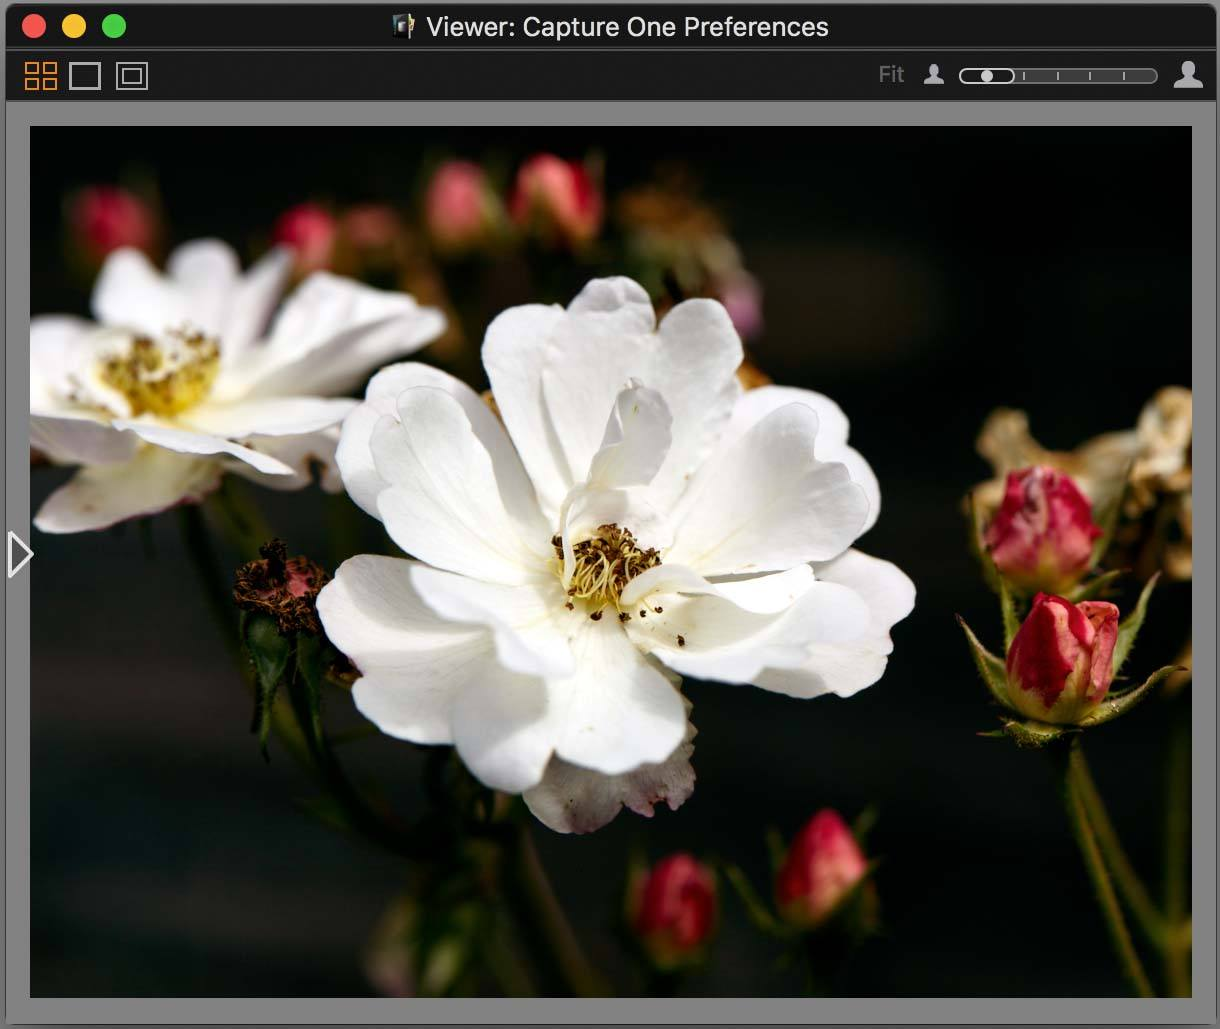 capture one pro 10, viewer, no exposure warning